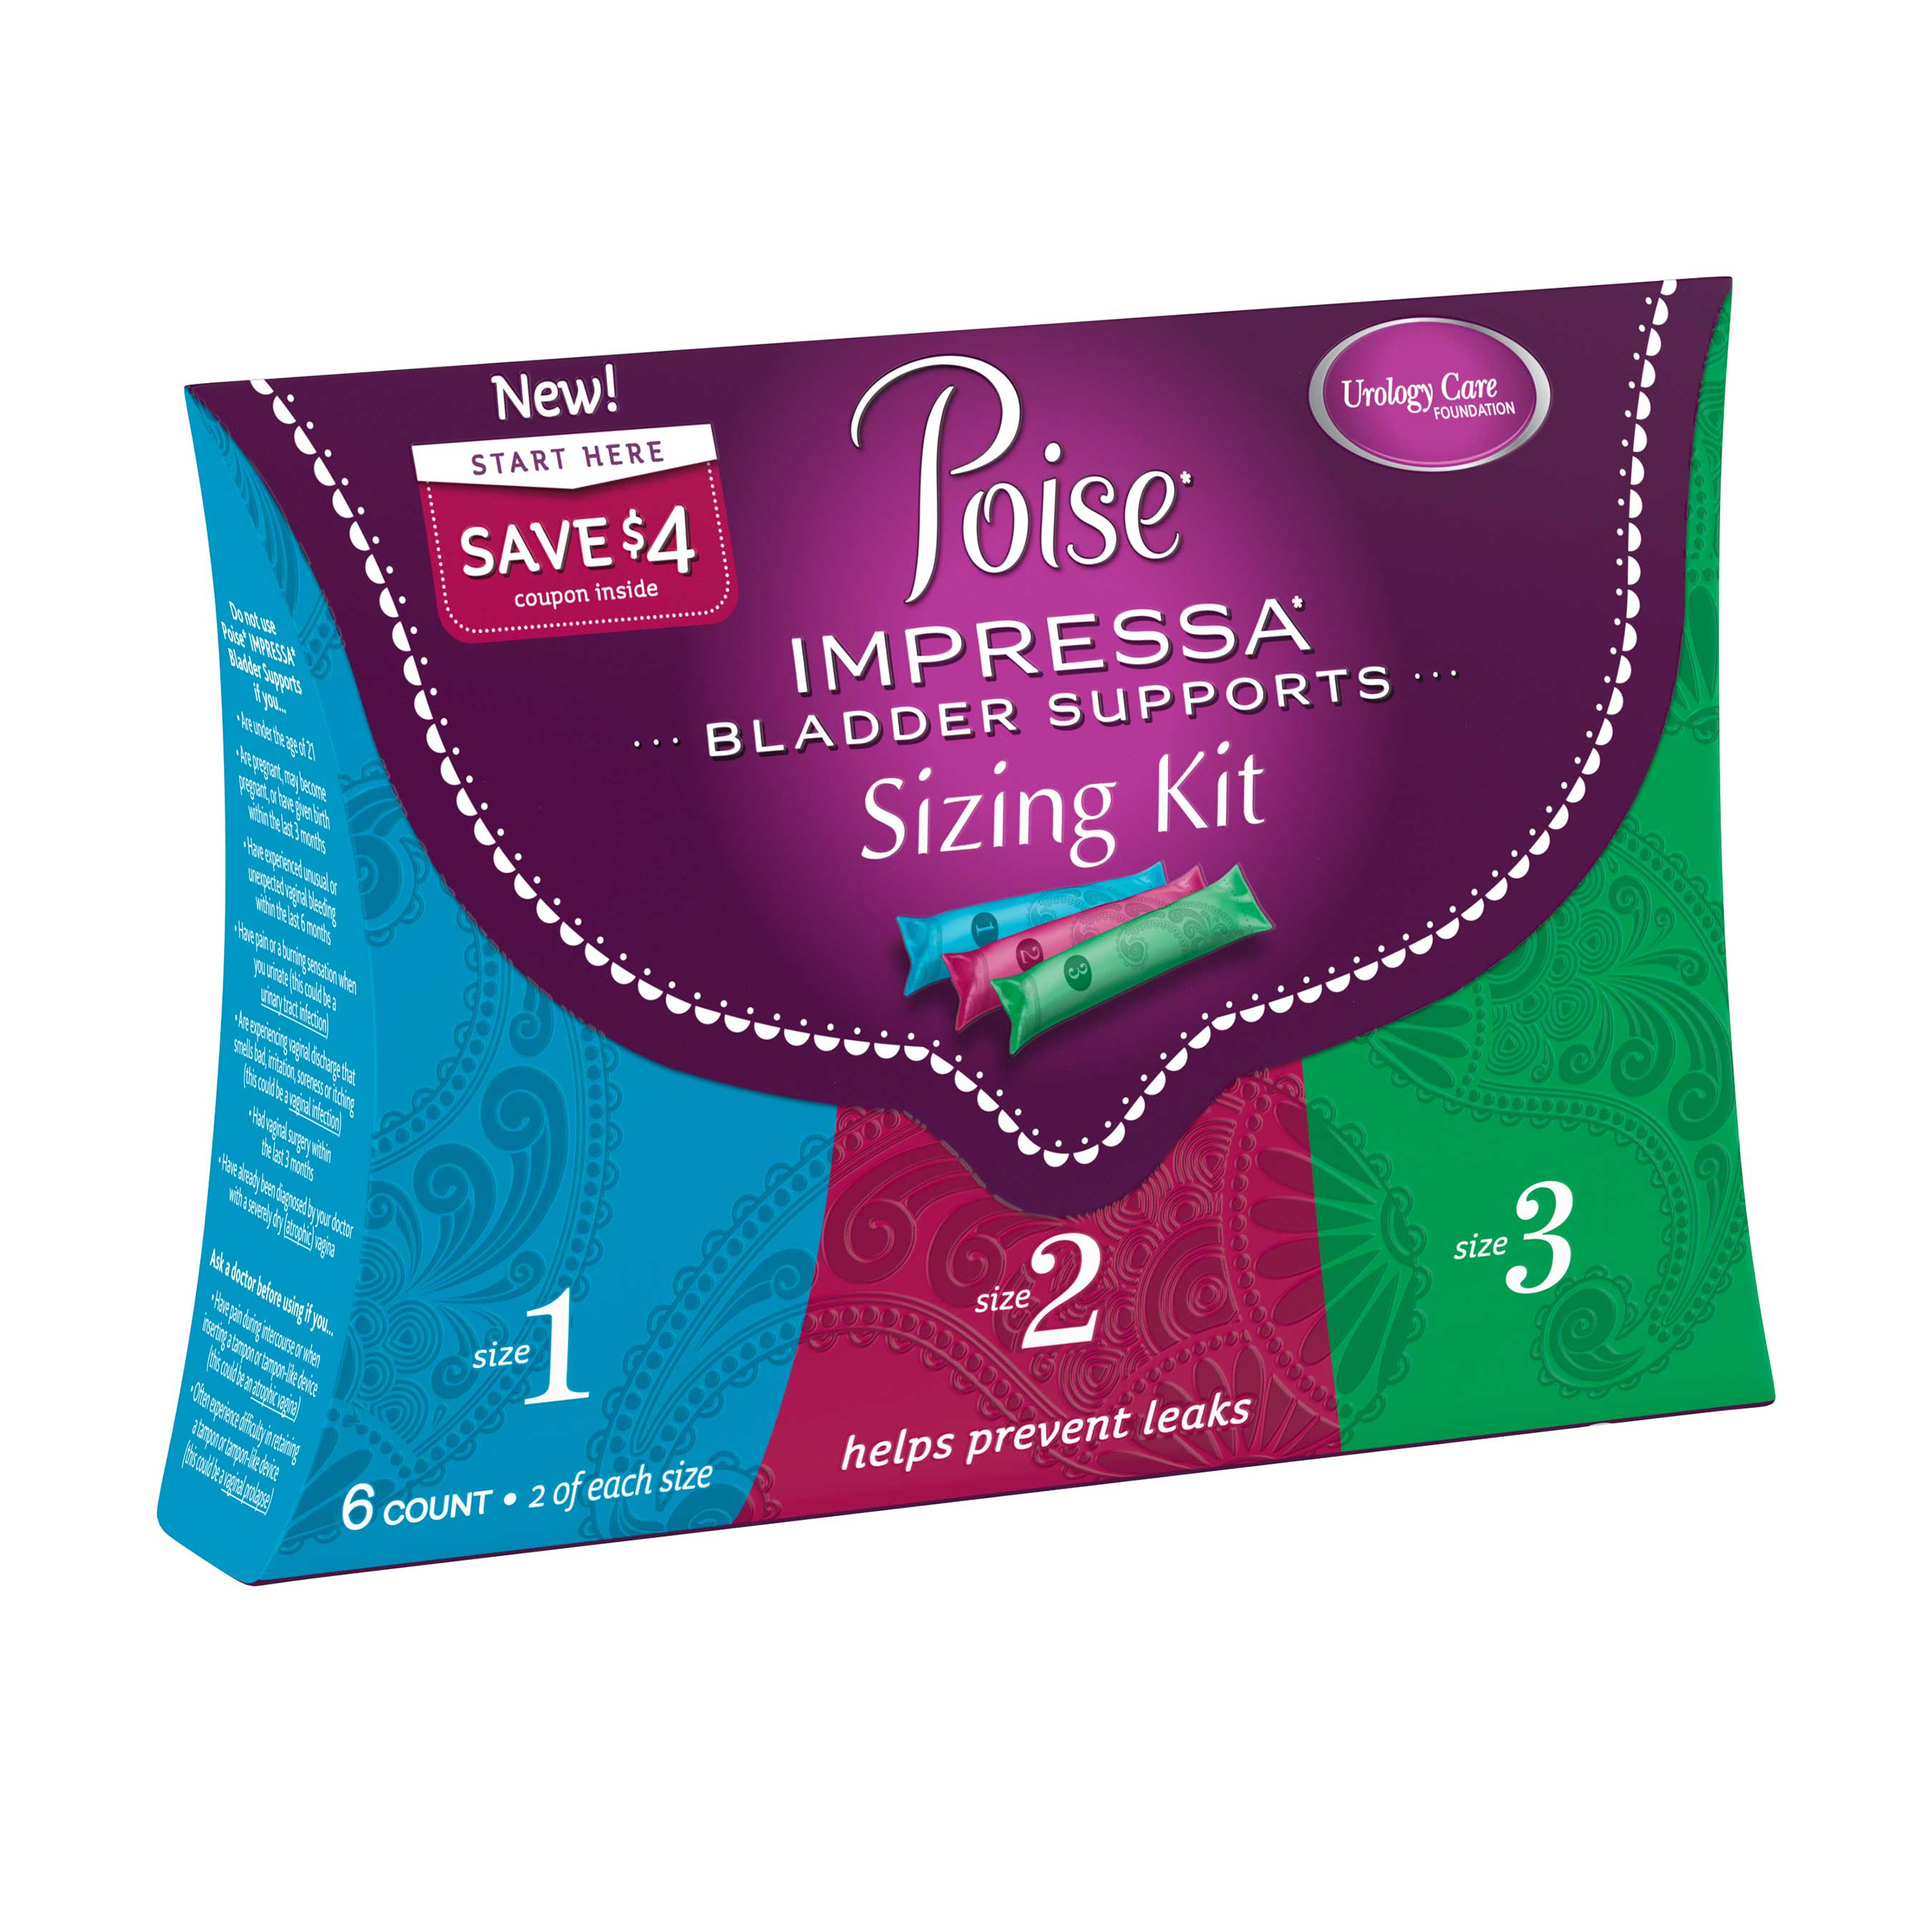 Women should start with the Poise Impressa Sizing Kit to find the size that helps to effectively stop their leaks and fits most comfortably.